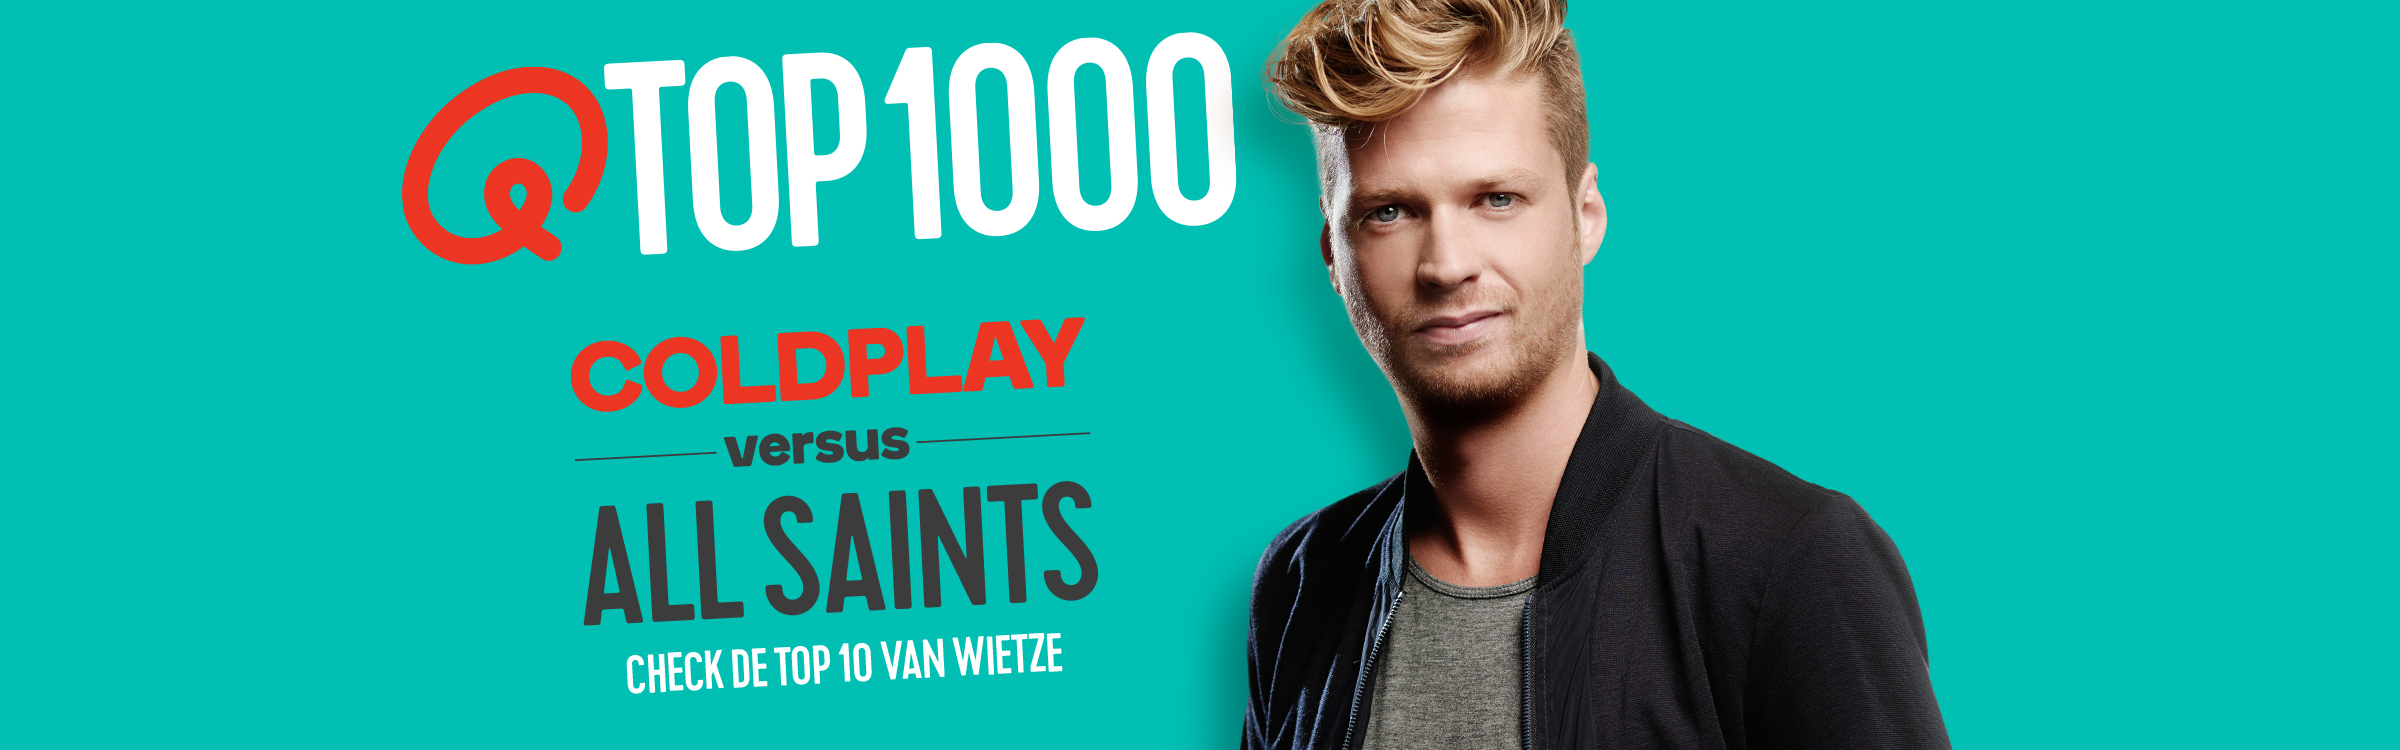 Wietze actionheader top1000 djs